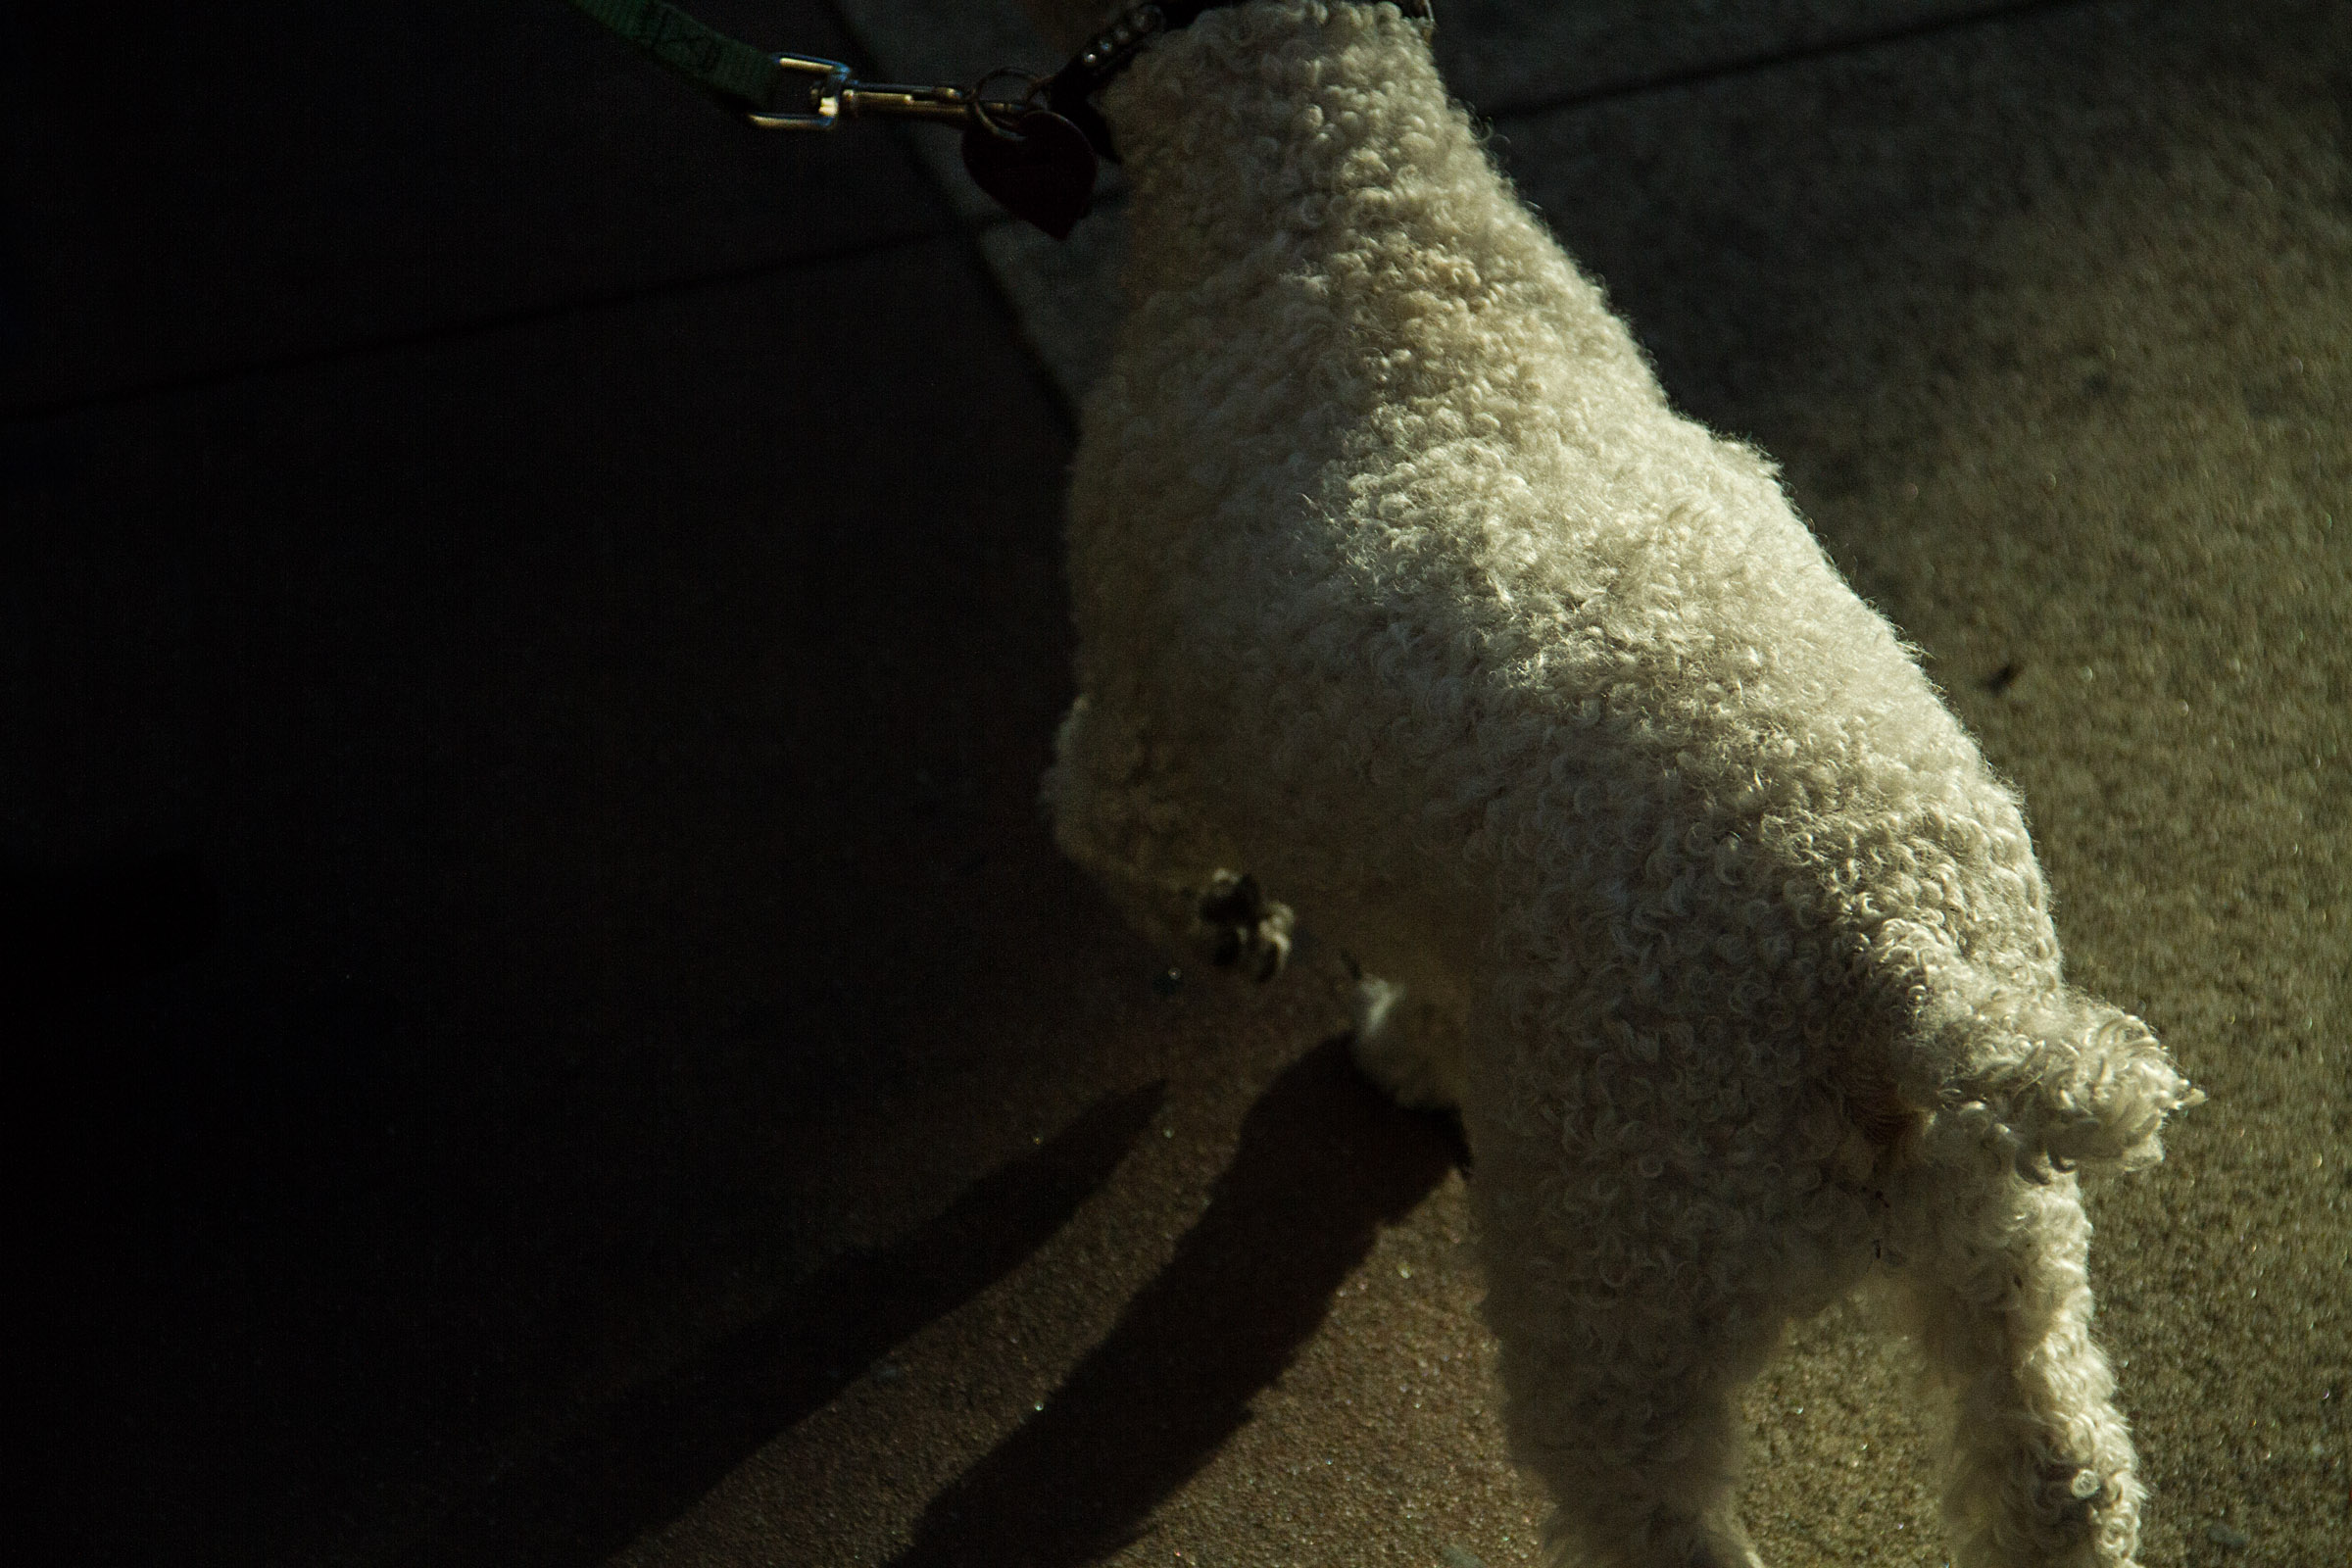 furry buddy in the mission sf.jpg